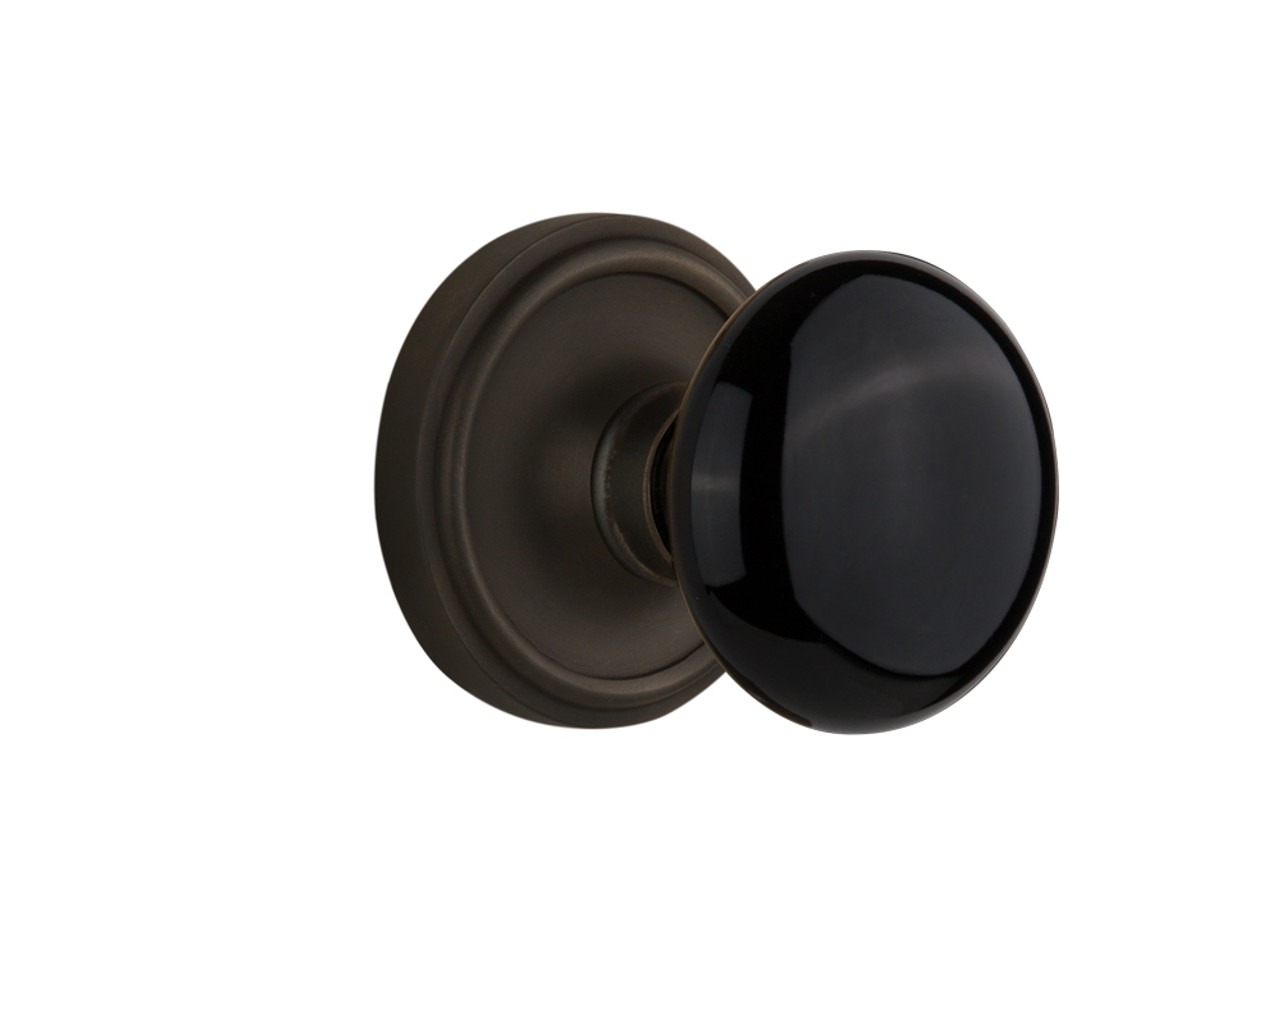 Nostalgic Warehouse Classic Rosette Double Dummy Black Porcelain Door Knob in Oil-Rubbed Bronze (NW-710198)